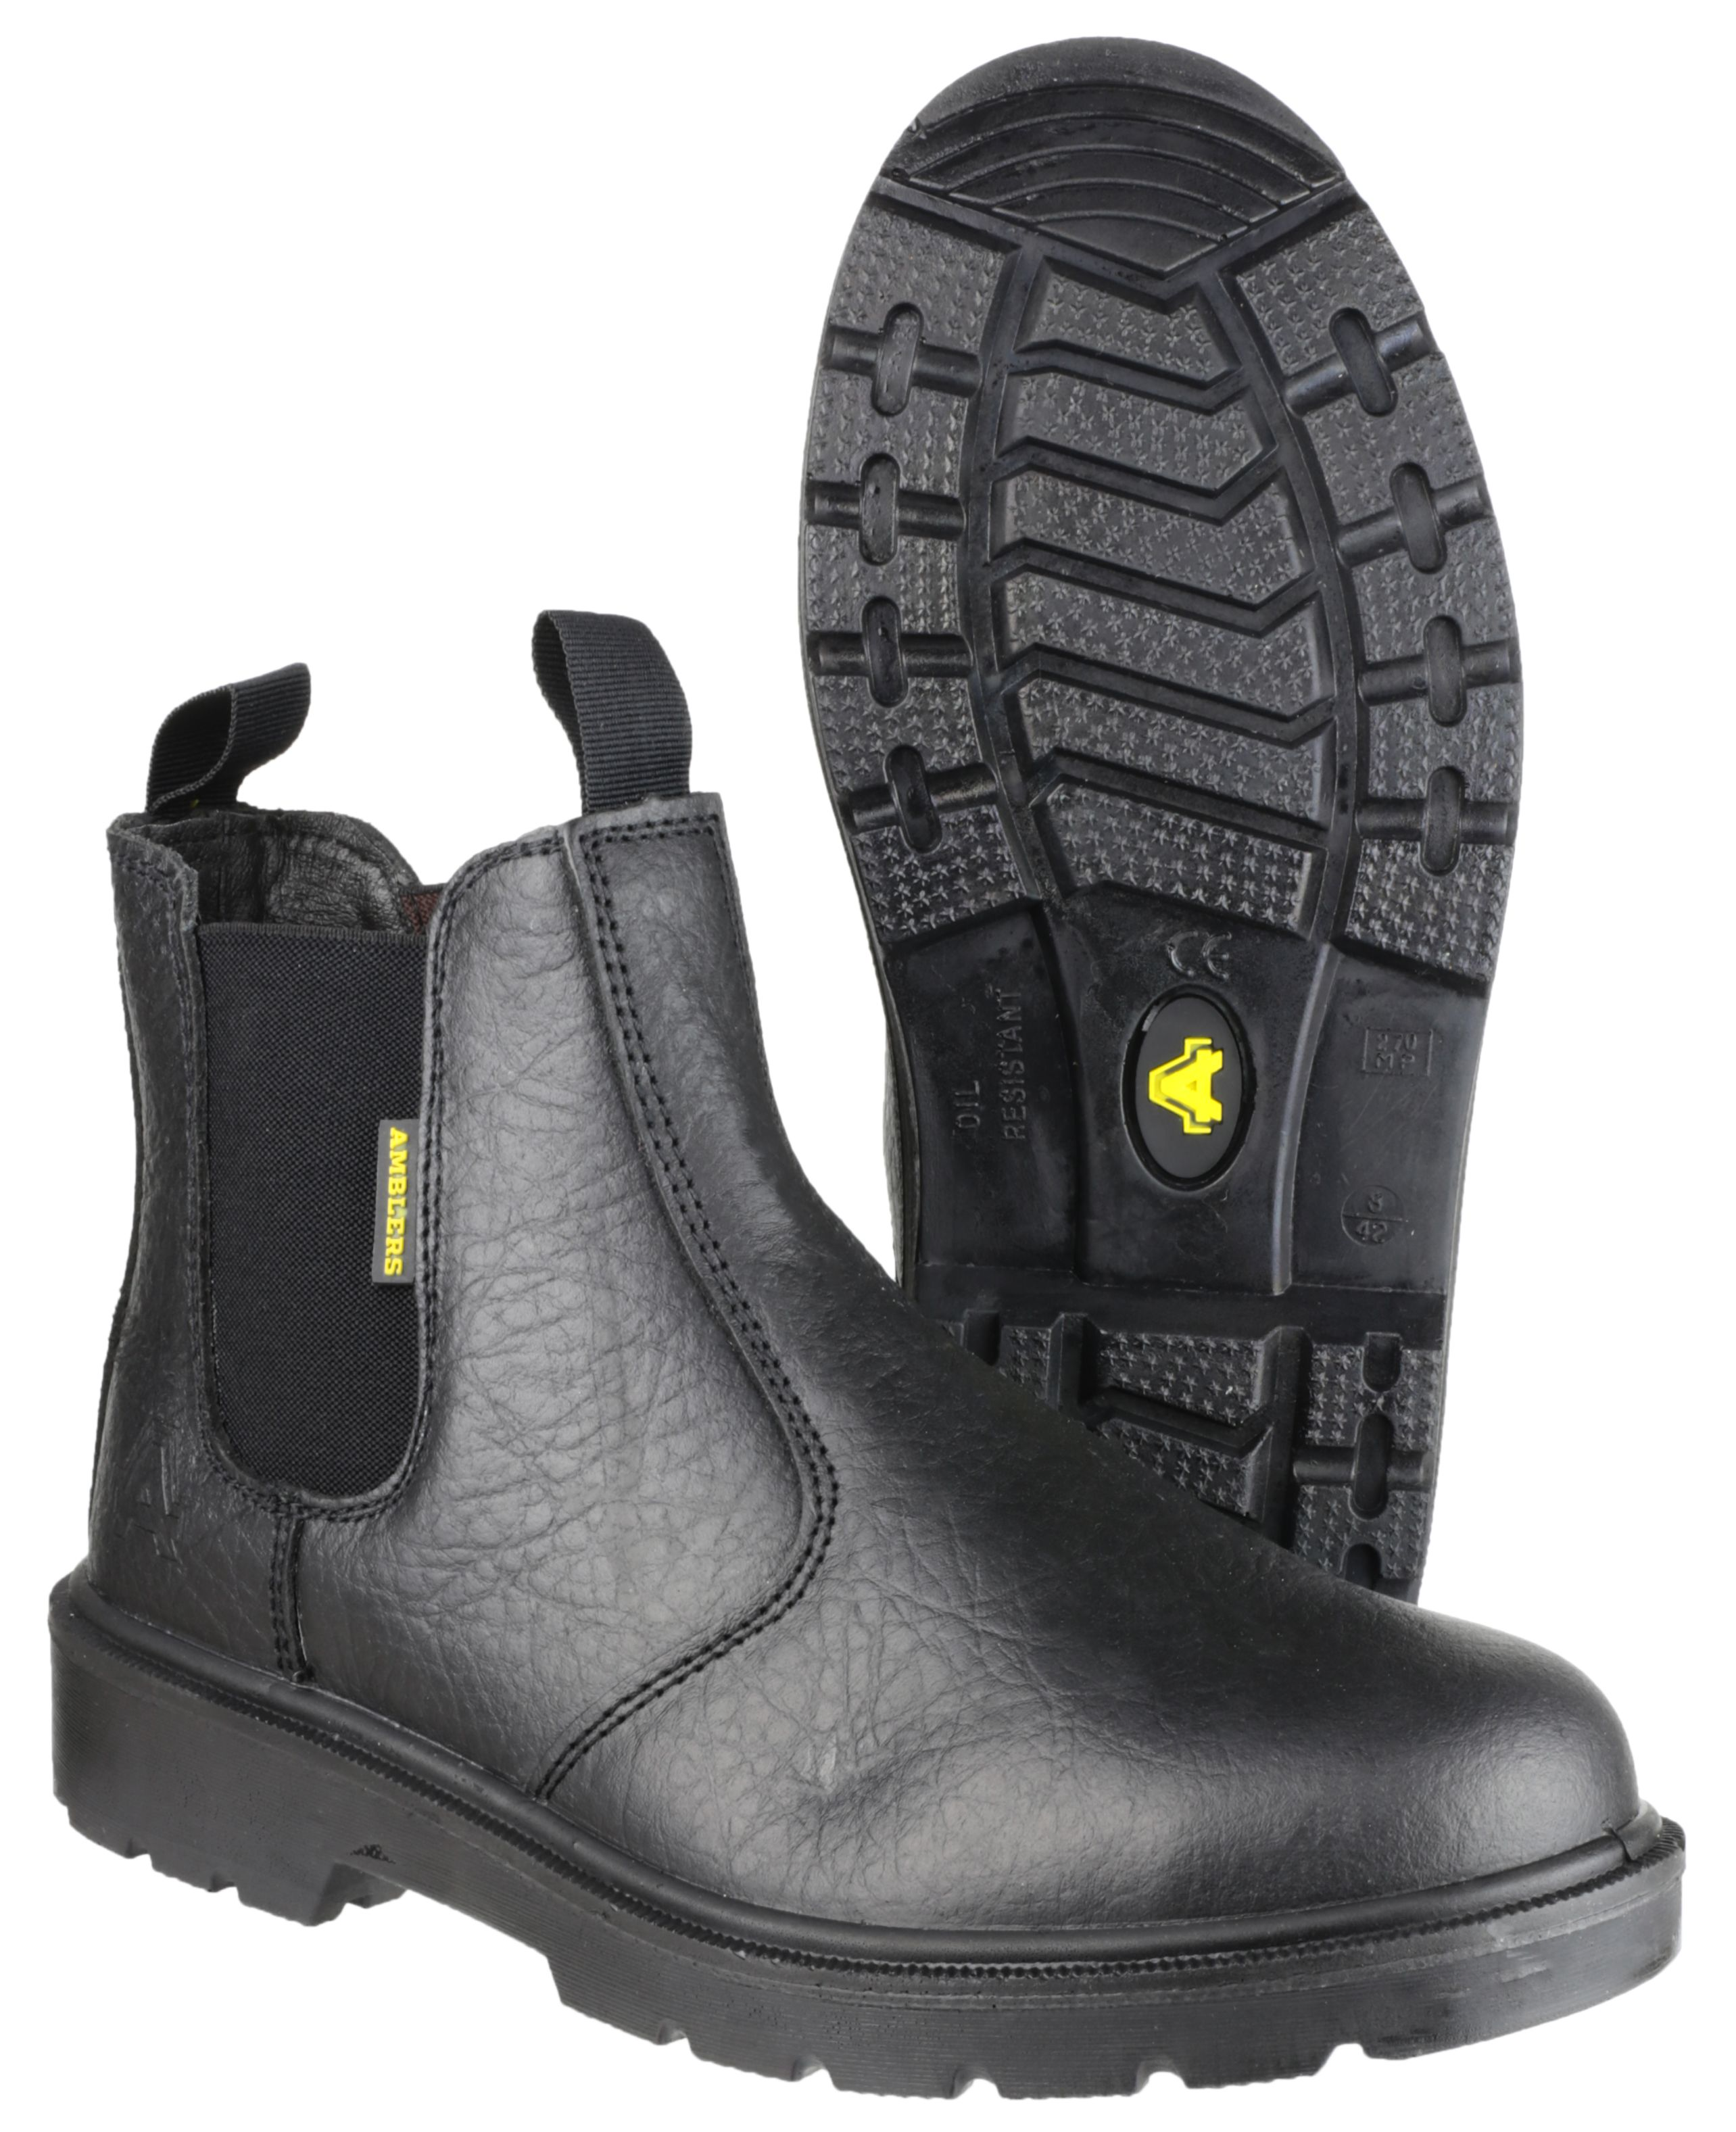 6108a512016 Pin by Amblers Safety on Amblers Safety Dealer Boots | Dealer boots ...